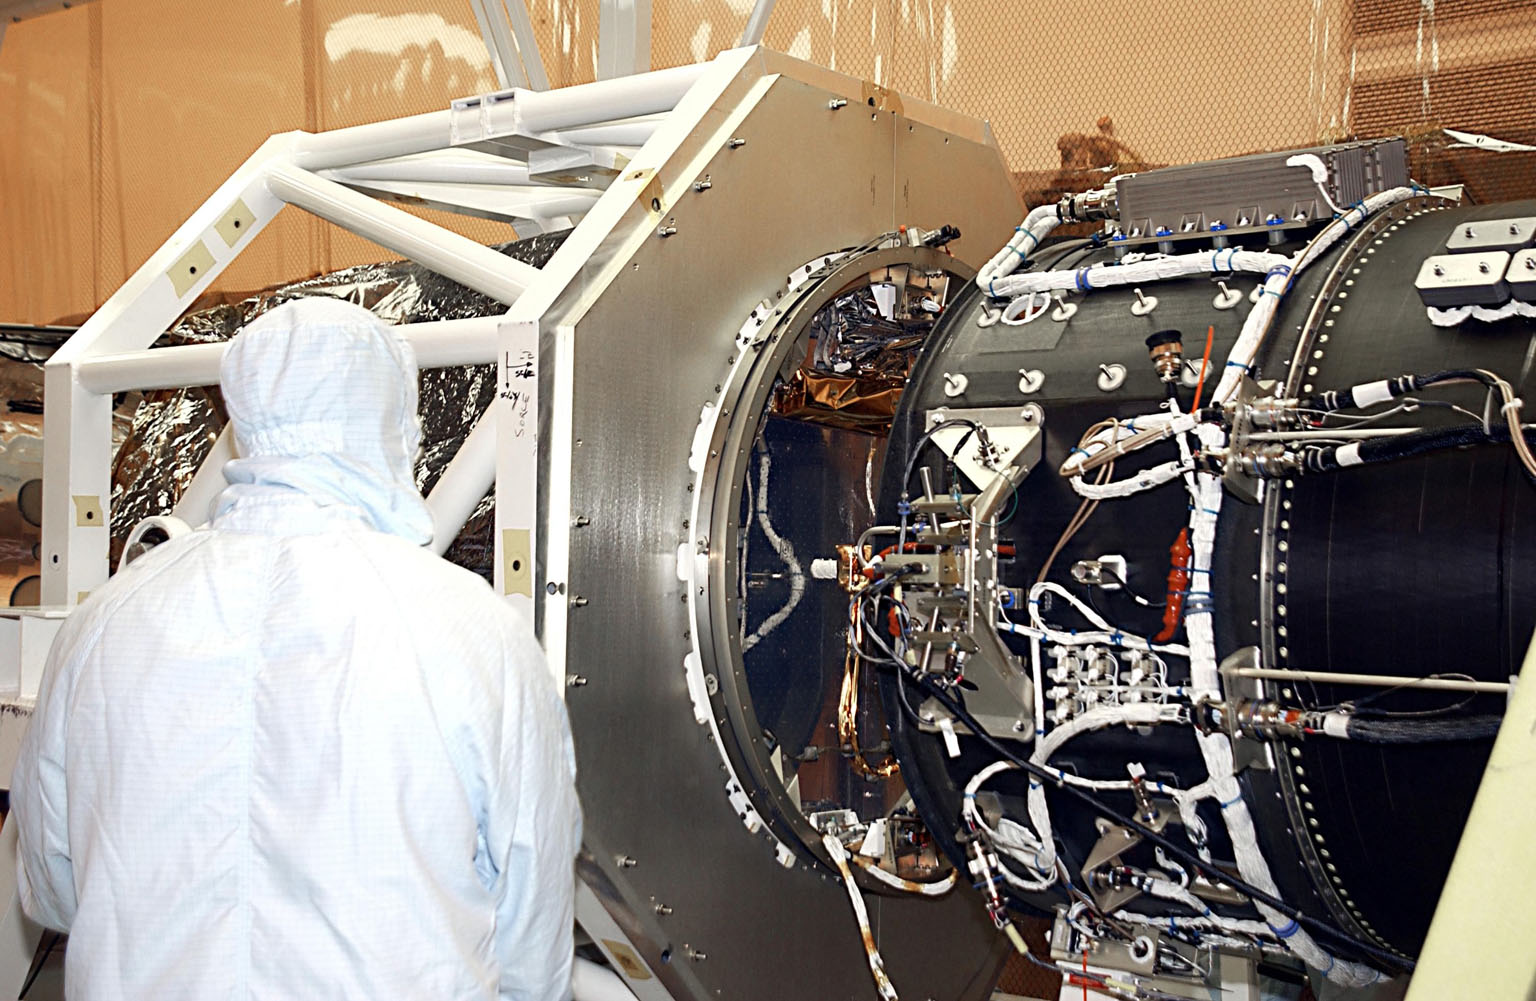 KENNEDY SPACE CENTER, FLA. -- In the Multi-Purpose Processing Facility, NASA's Solar Radiation and Climate Experiment (SORCE) closes in on the Pegasus XL Expendable Launch Vehicle for mating. SORCE will study and measure solar irradiance as a source of energy in the Earth's atmosphere. The launch of SORCE is scheduled for Jan. 25 at 3:14 p.m. from Cape Canaveral Air Force Station, Fla.